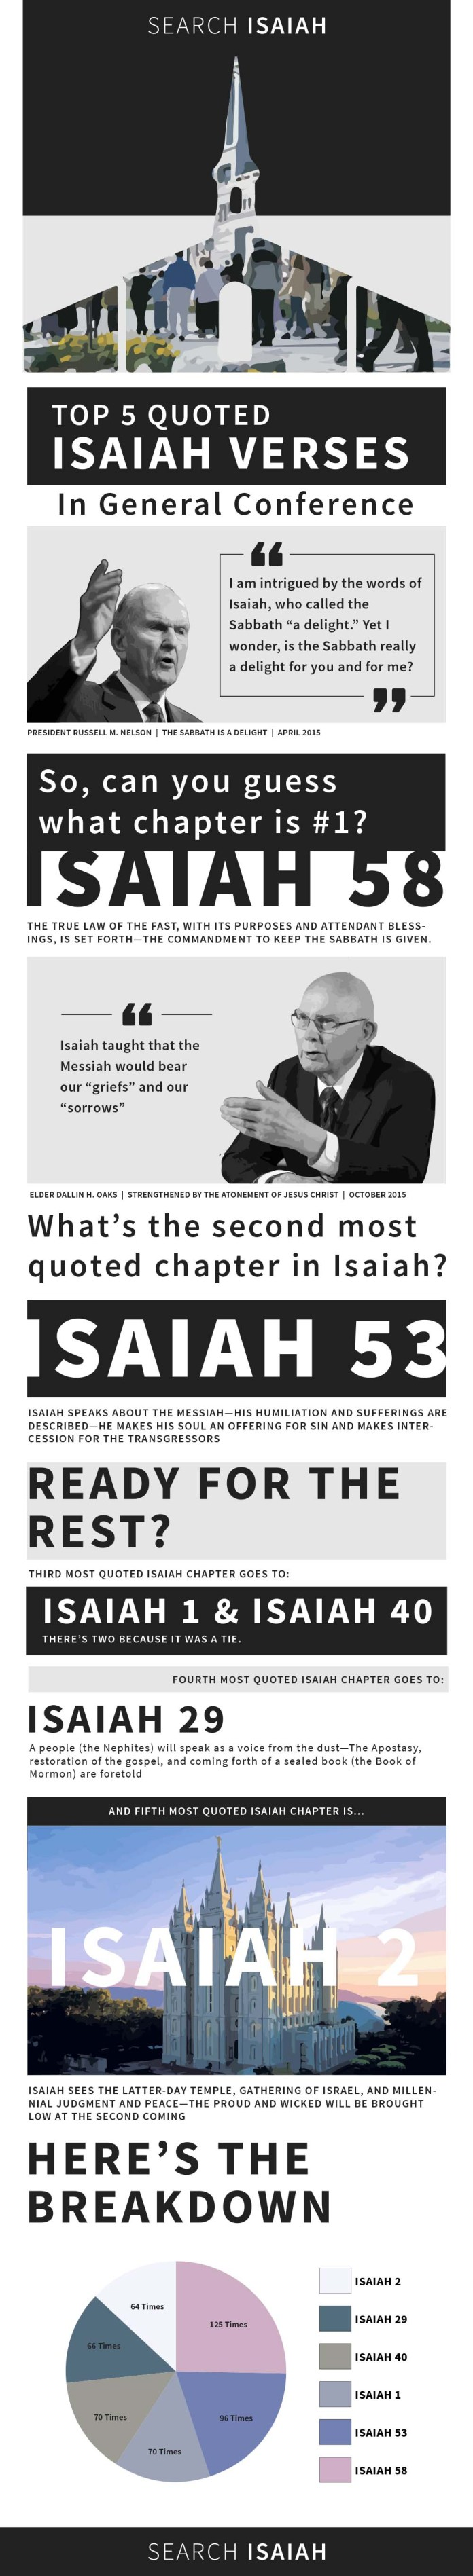 Top 5 Quoted Isaiah Chapters in LDS General Conference